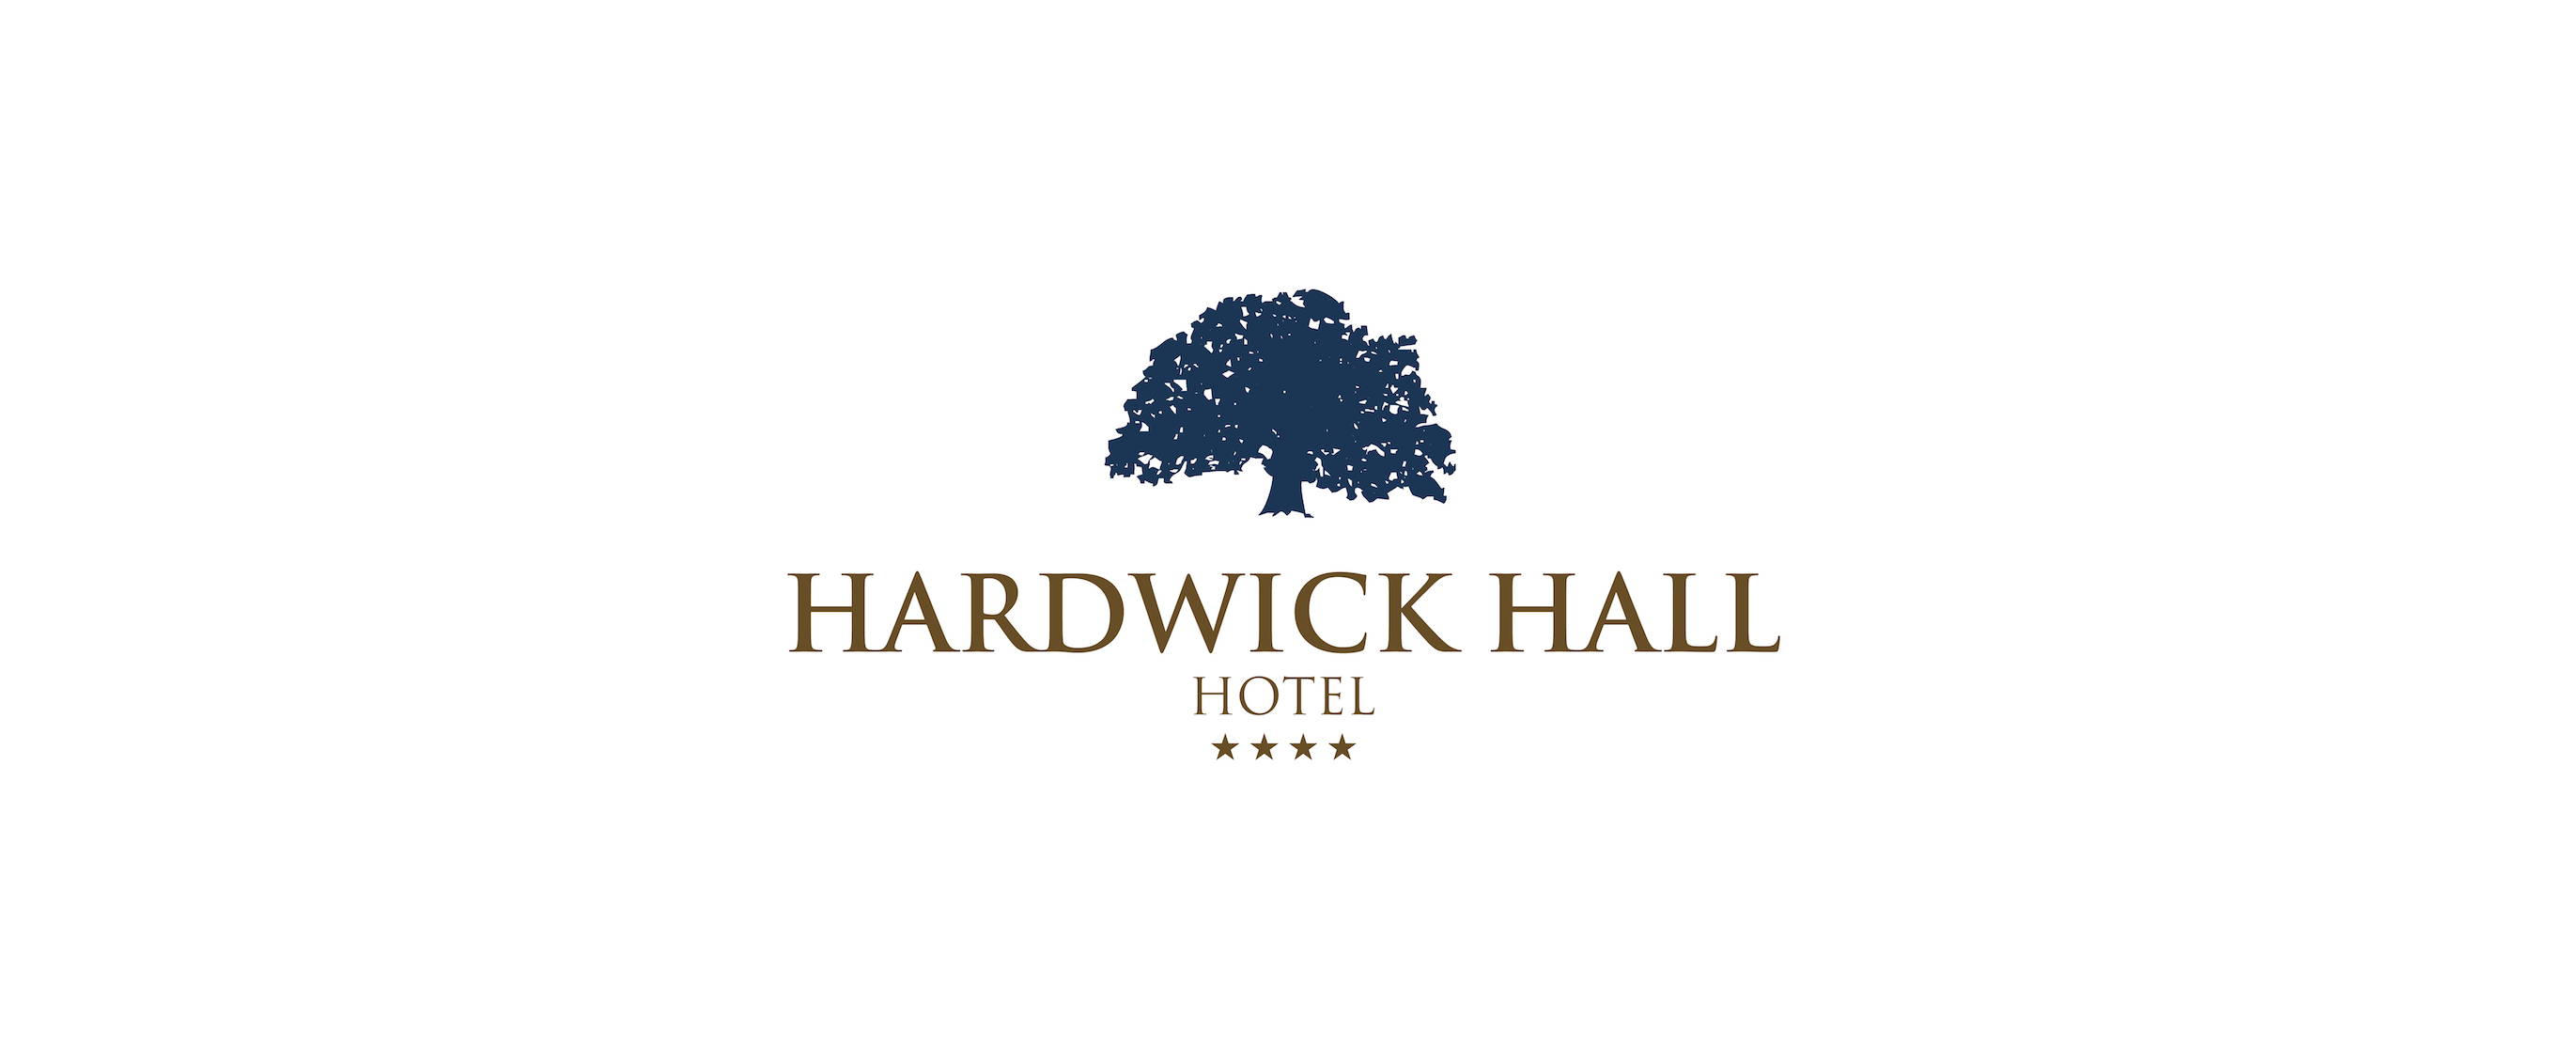 Hardwick Hall Hotel Book Restaurants Online With Resdiary